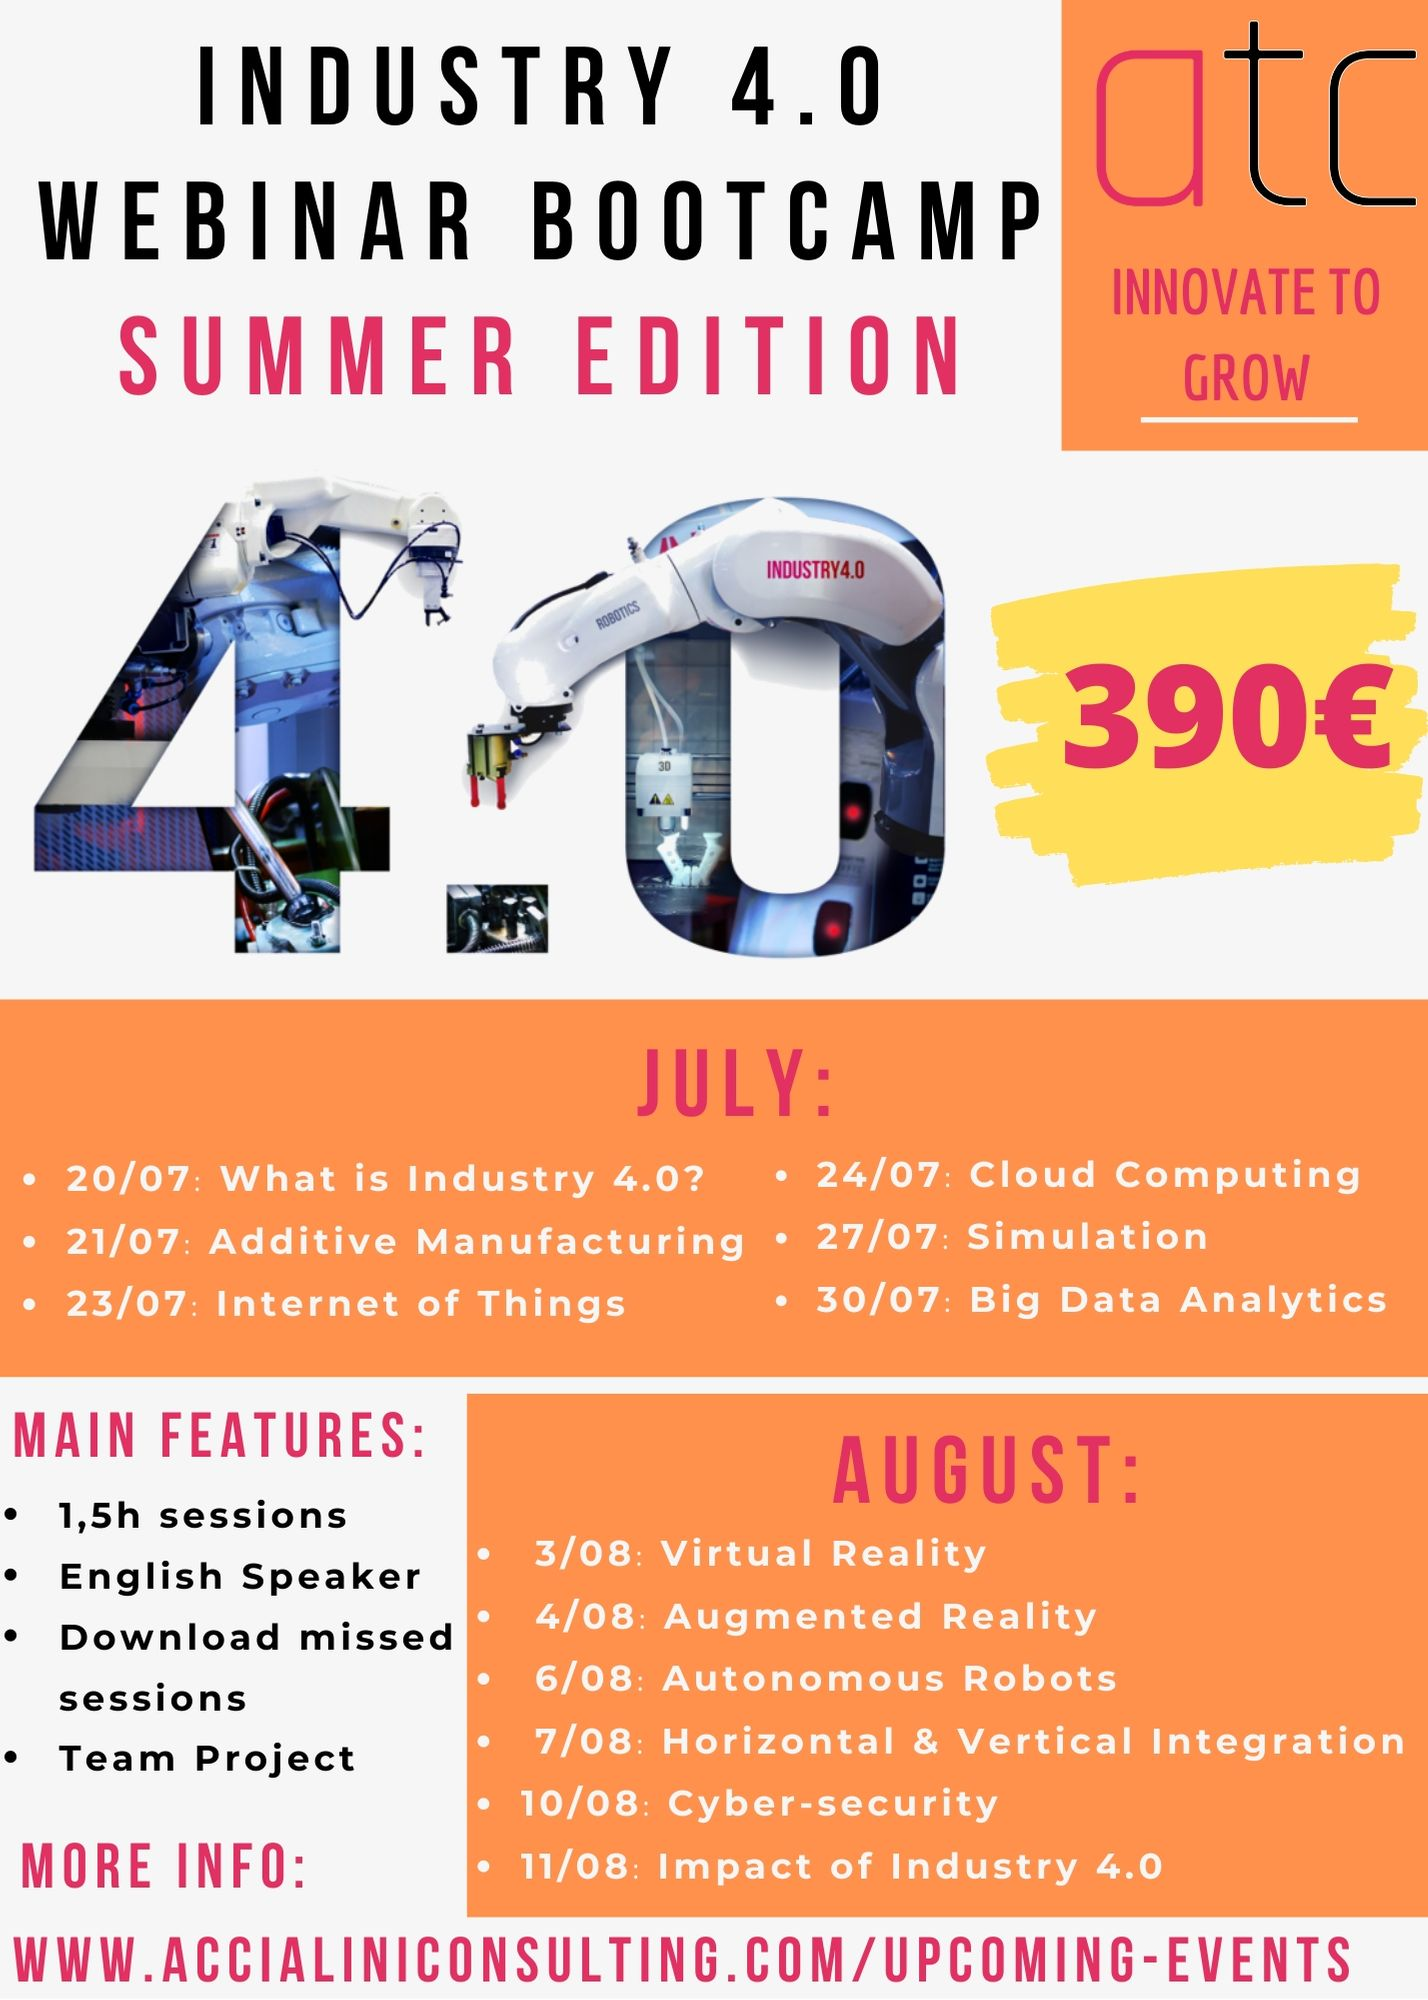 Industry 4.0 Webinar Bootcamp Summer Edition